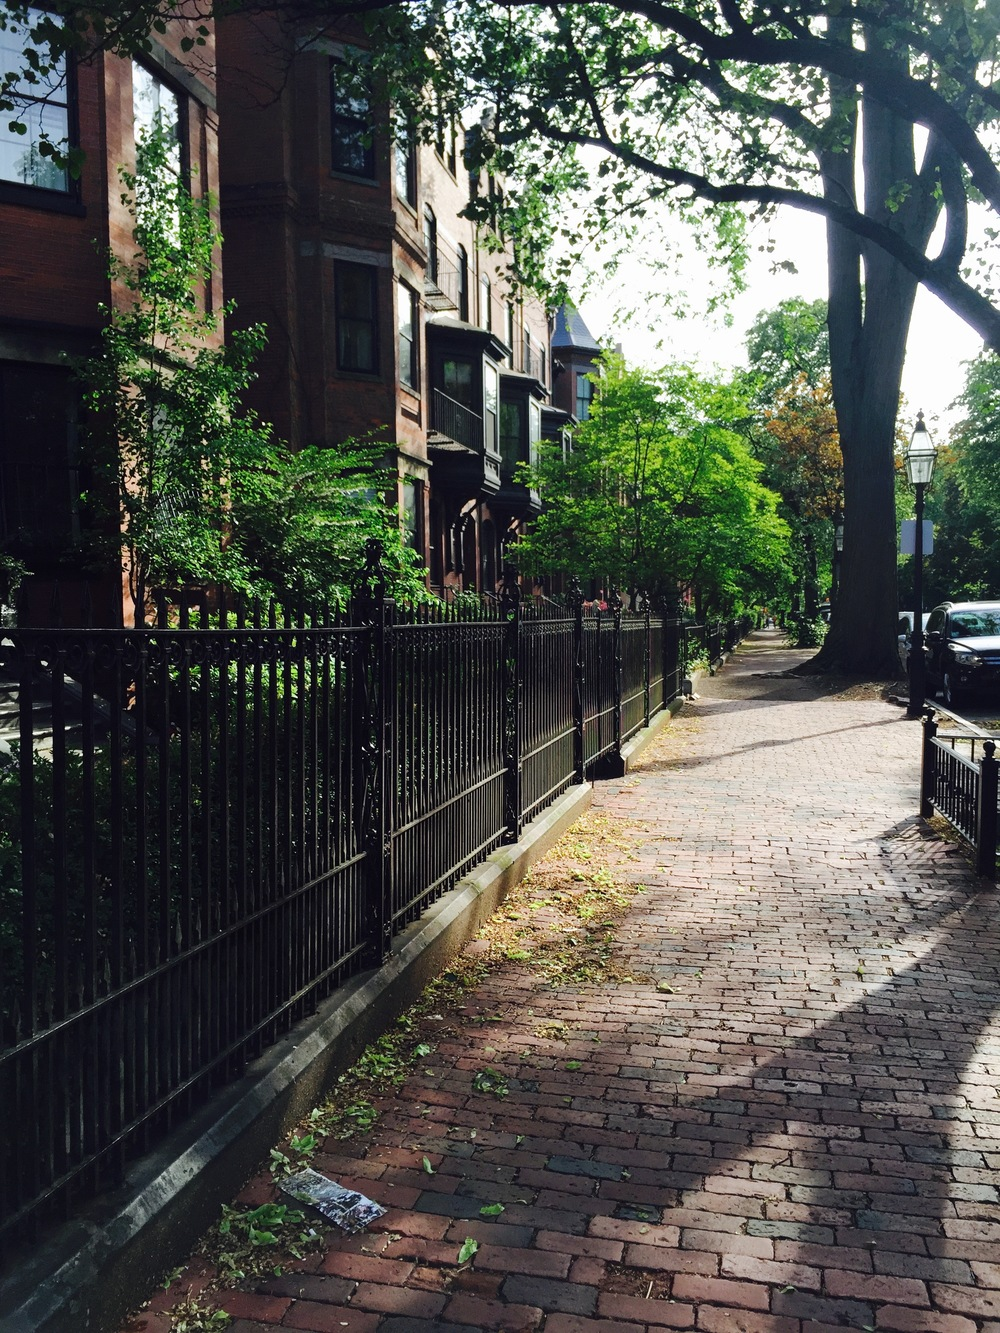 Marlboro Street in the Back Bay of Boston